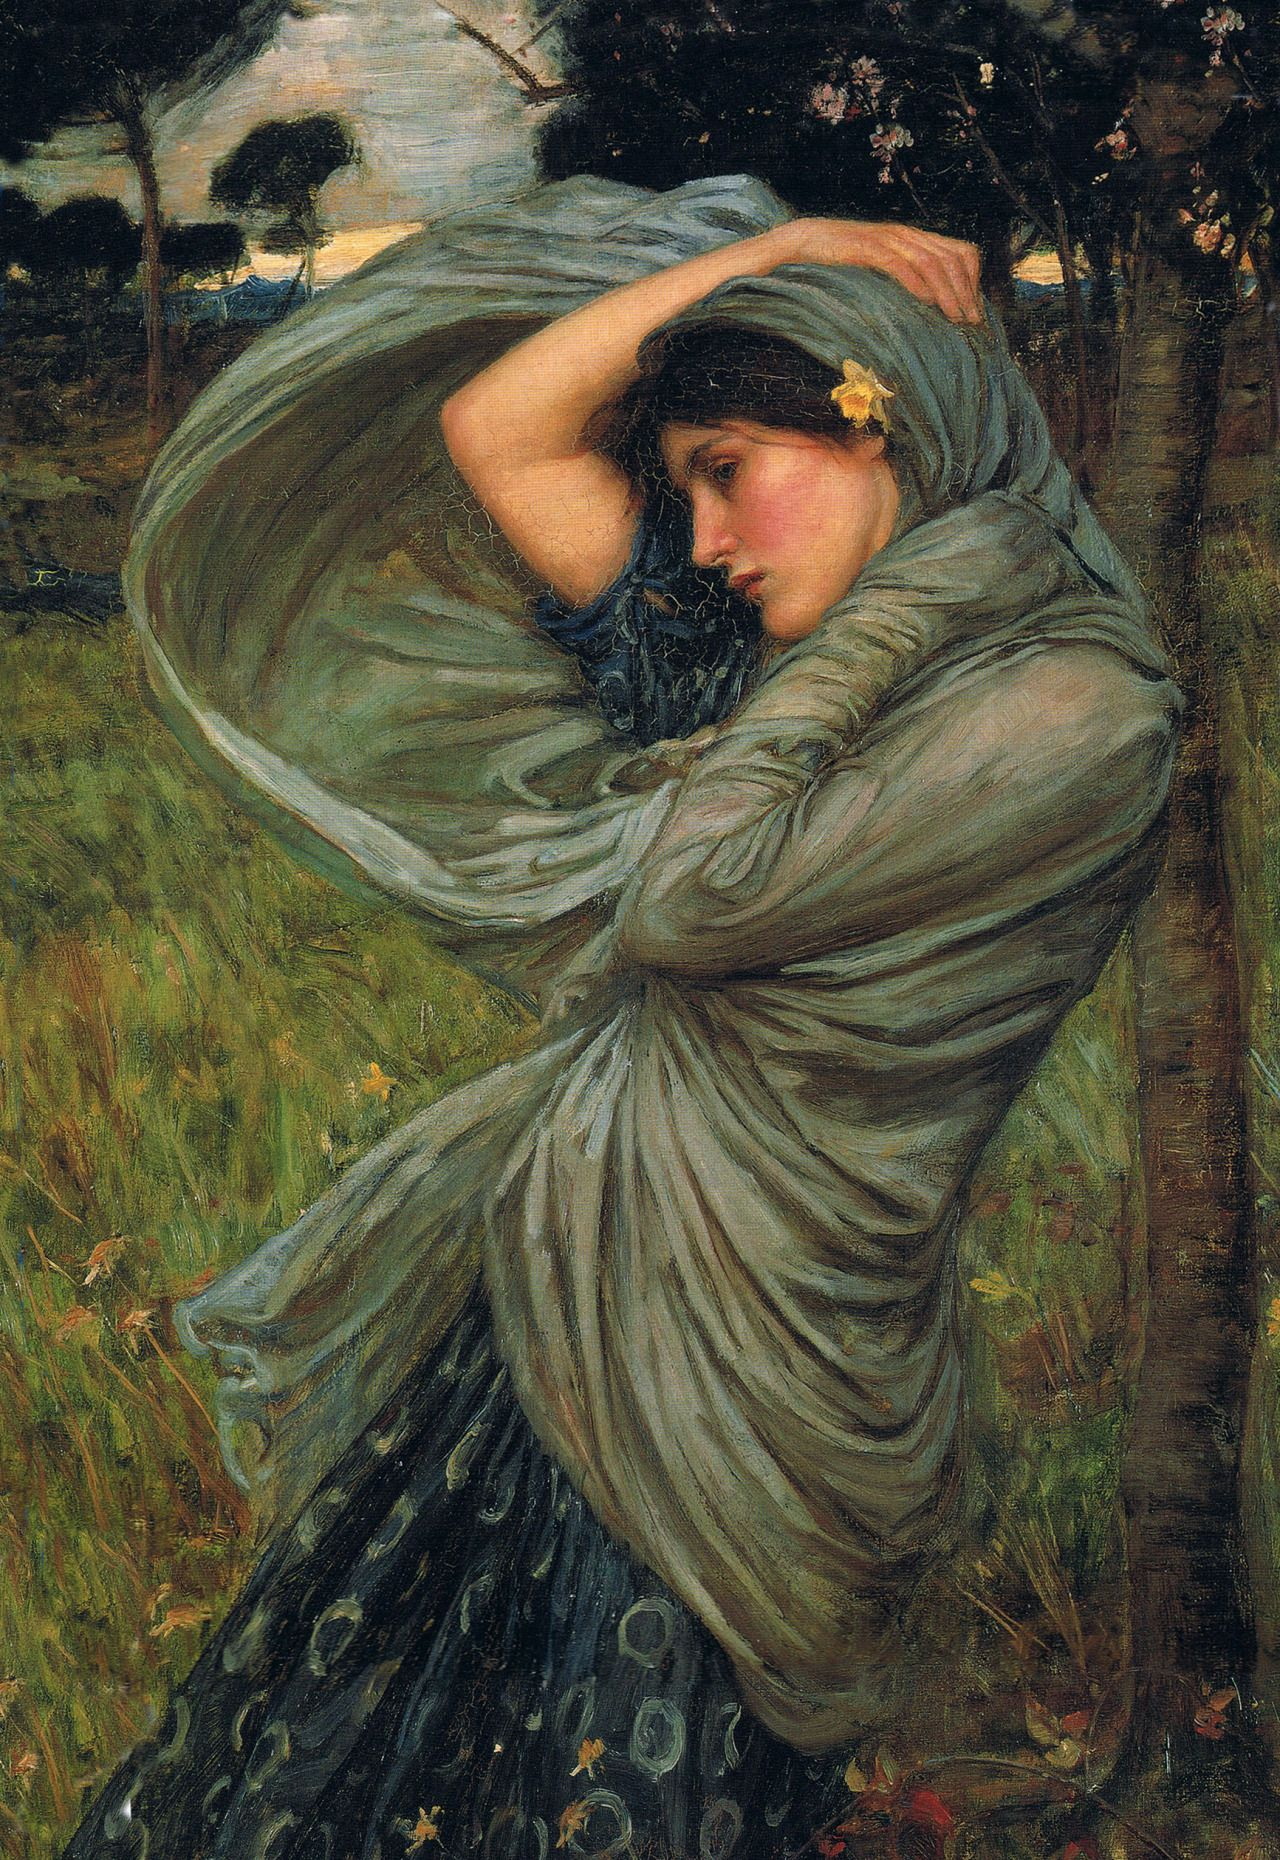 john william waterhouse John william waterhouse: (1849-1917) pre-raphaelite painter particularly known for his depiction of classical subjects and of characters and themes from classical literature and poetry, particularly from the works of dante alighieri, tennyson and shakespeare.